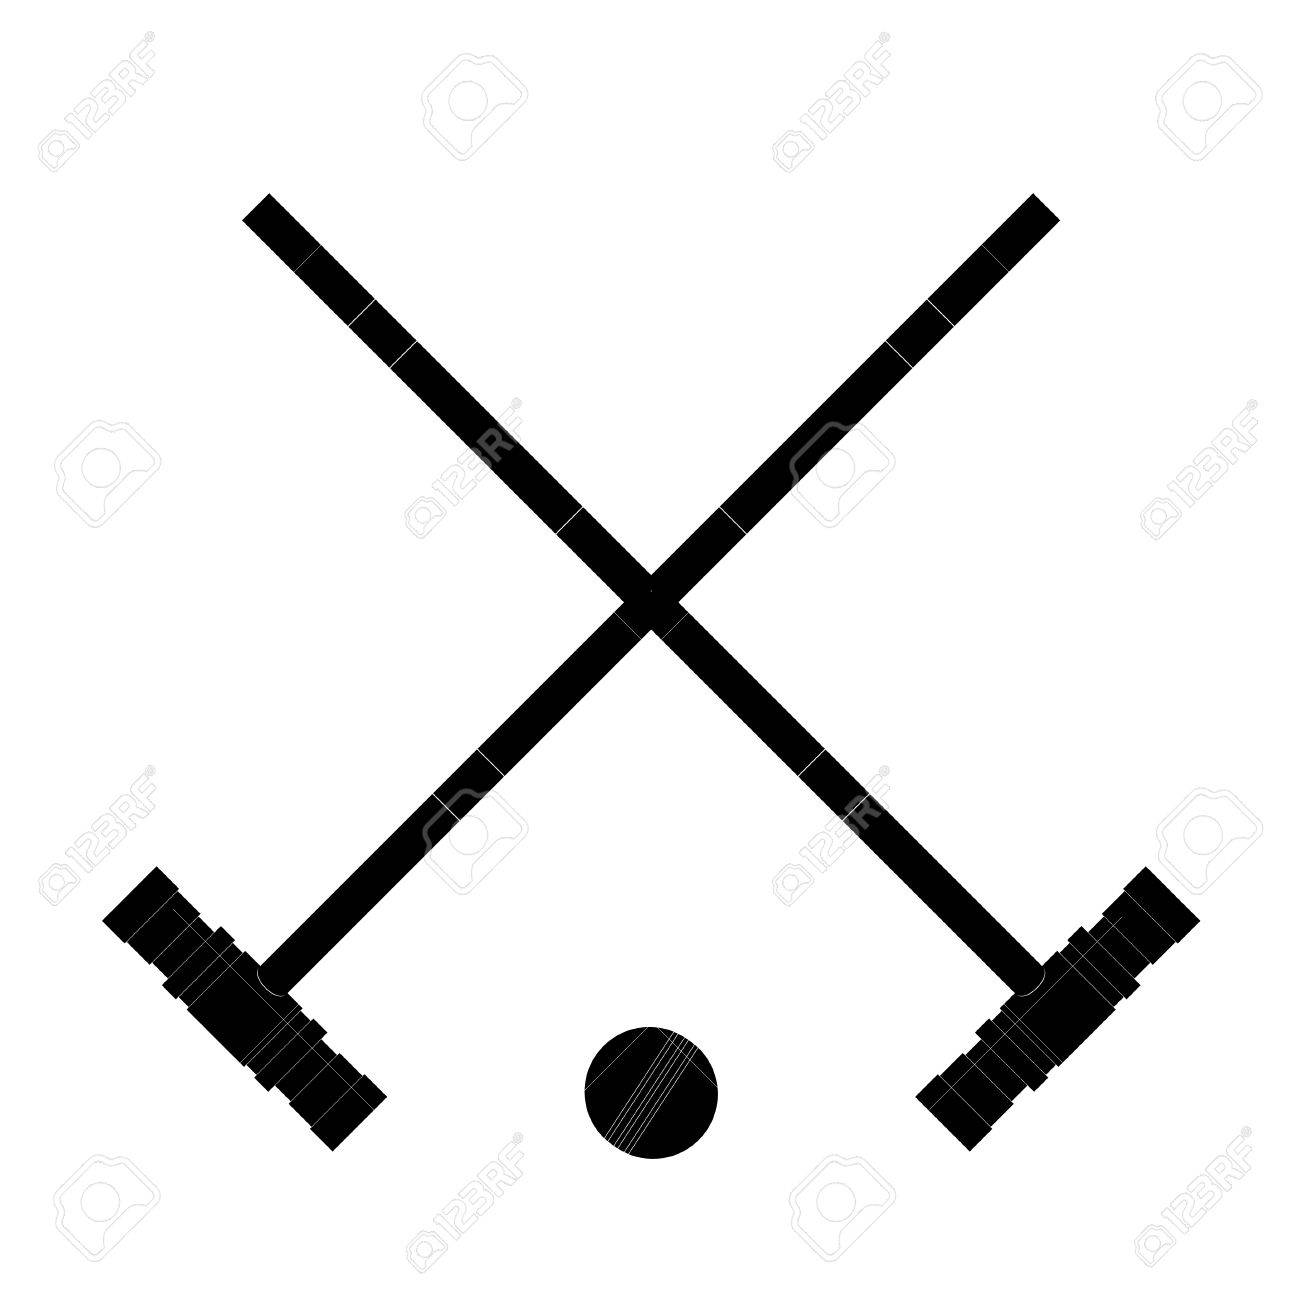 Black Image The Hammers And Ball Hammers And The Ball Croquet 1300x1300